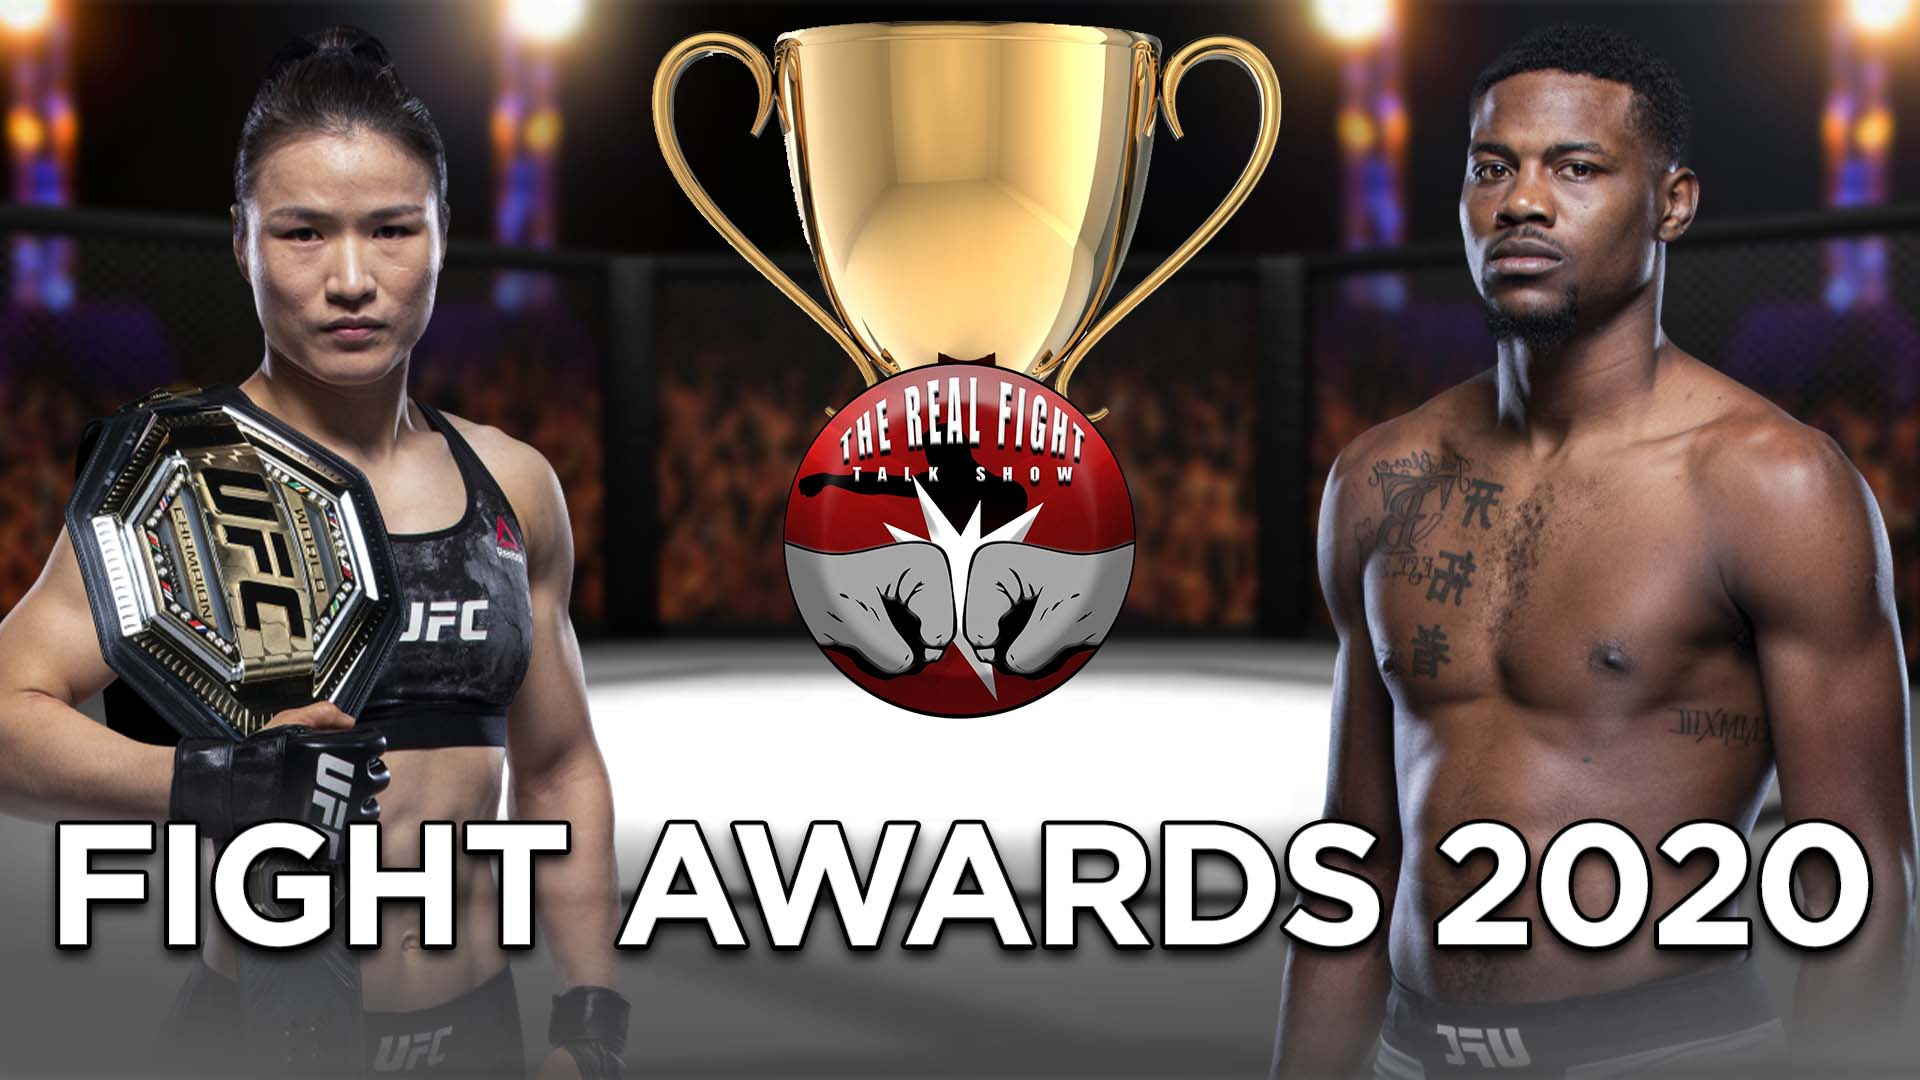 Fight Awards 2020 - The Real FIGHT Talk Show